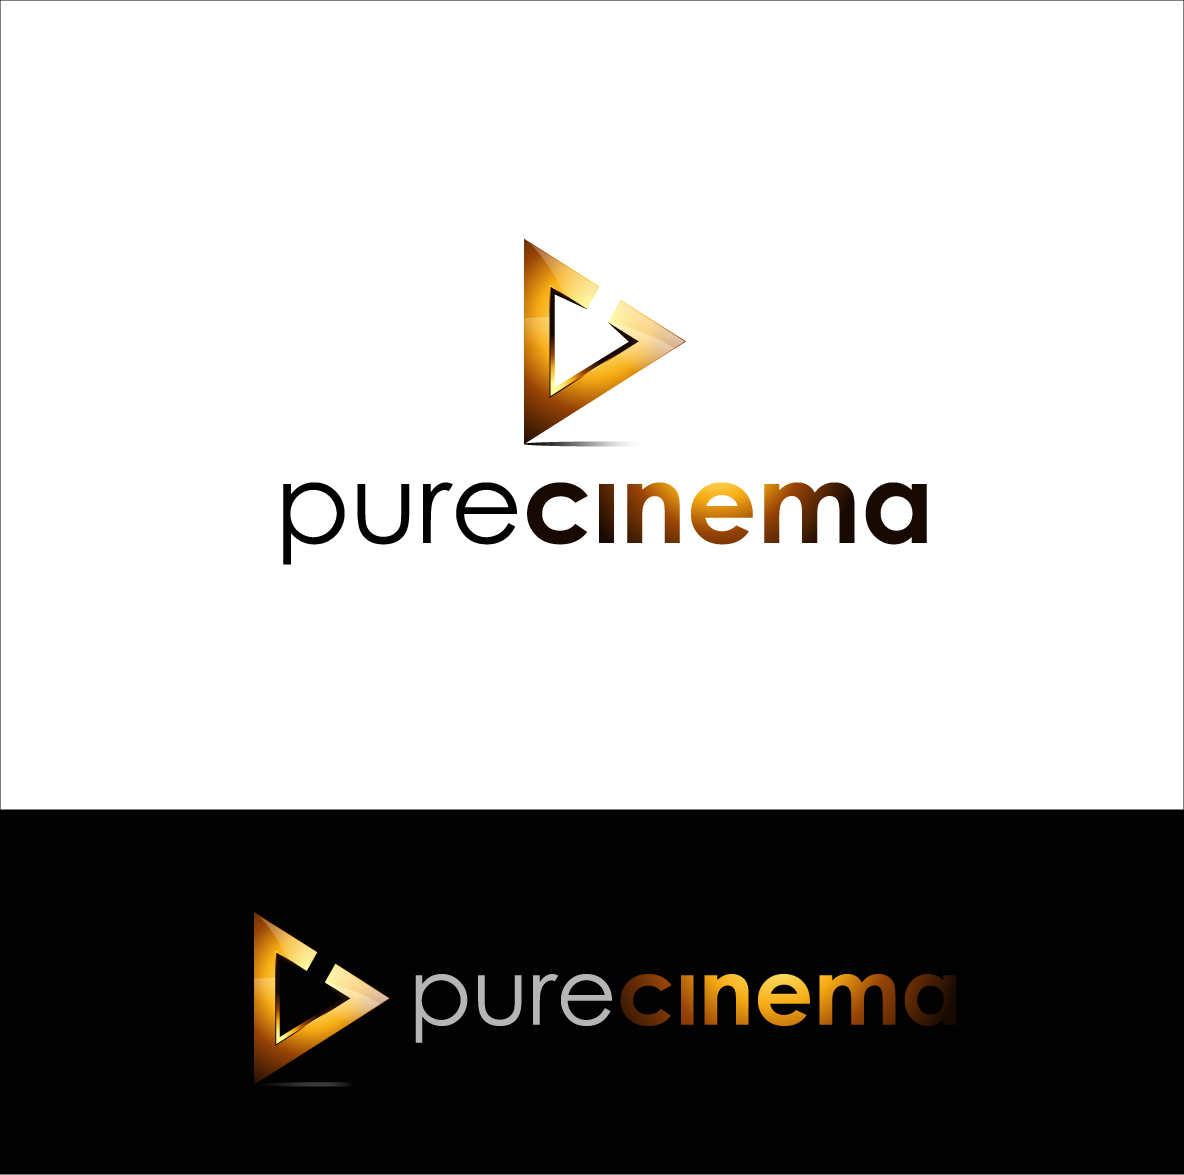 Logo Design by zoiDesign - Entry No. 110 in the Logo Design Contest Imaginative Logo Design for Pure Cinema.